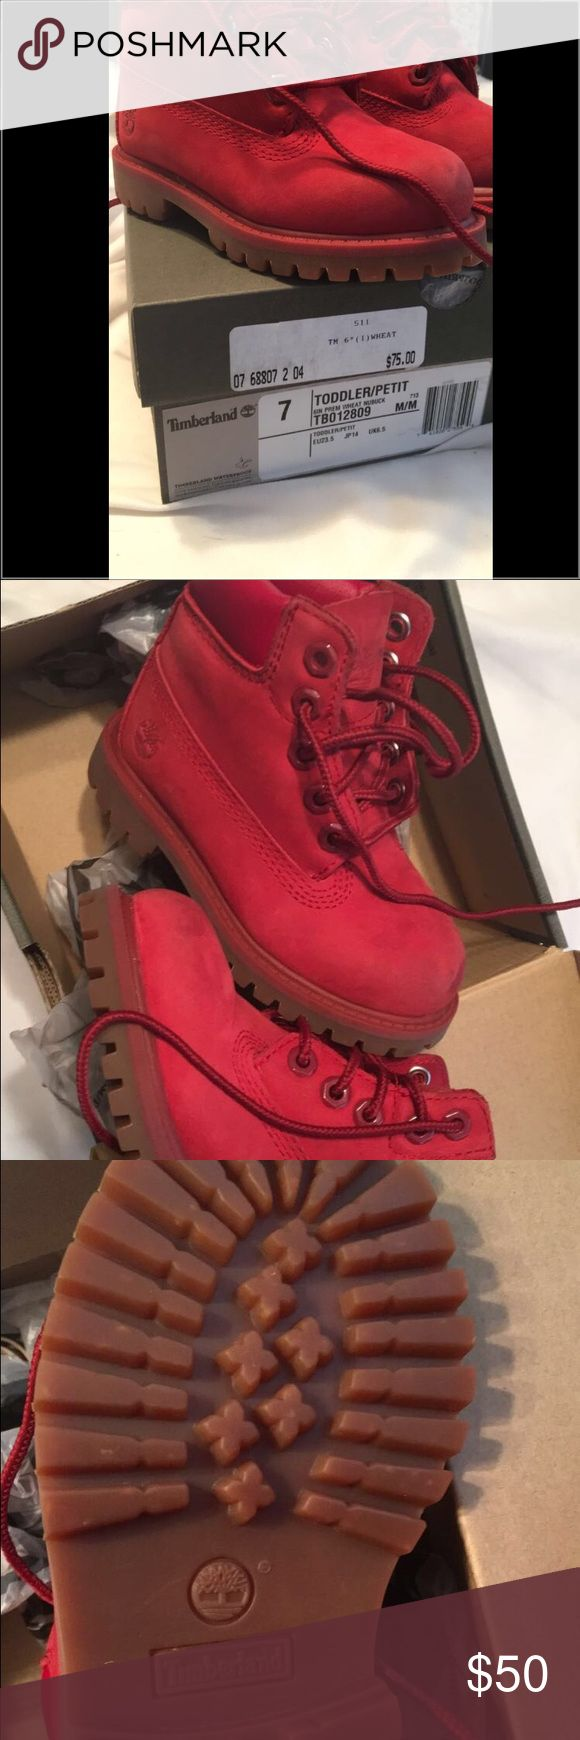 Red toddler timberland boots LIKE NEW red suede timberland boots size 7, worn twice Timberland Shoes Boots